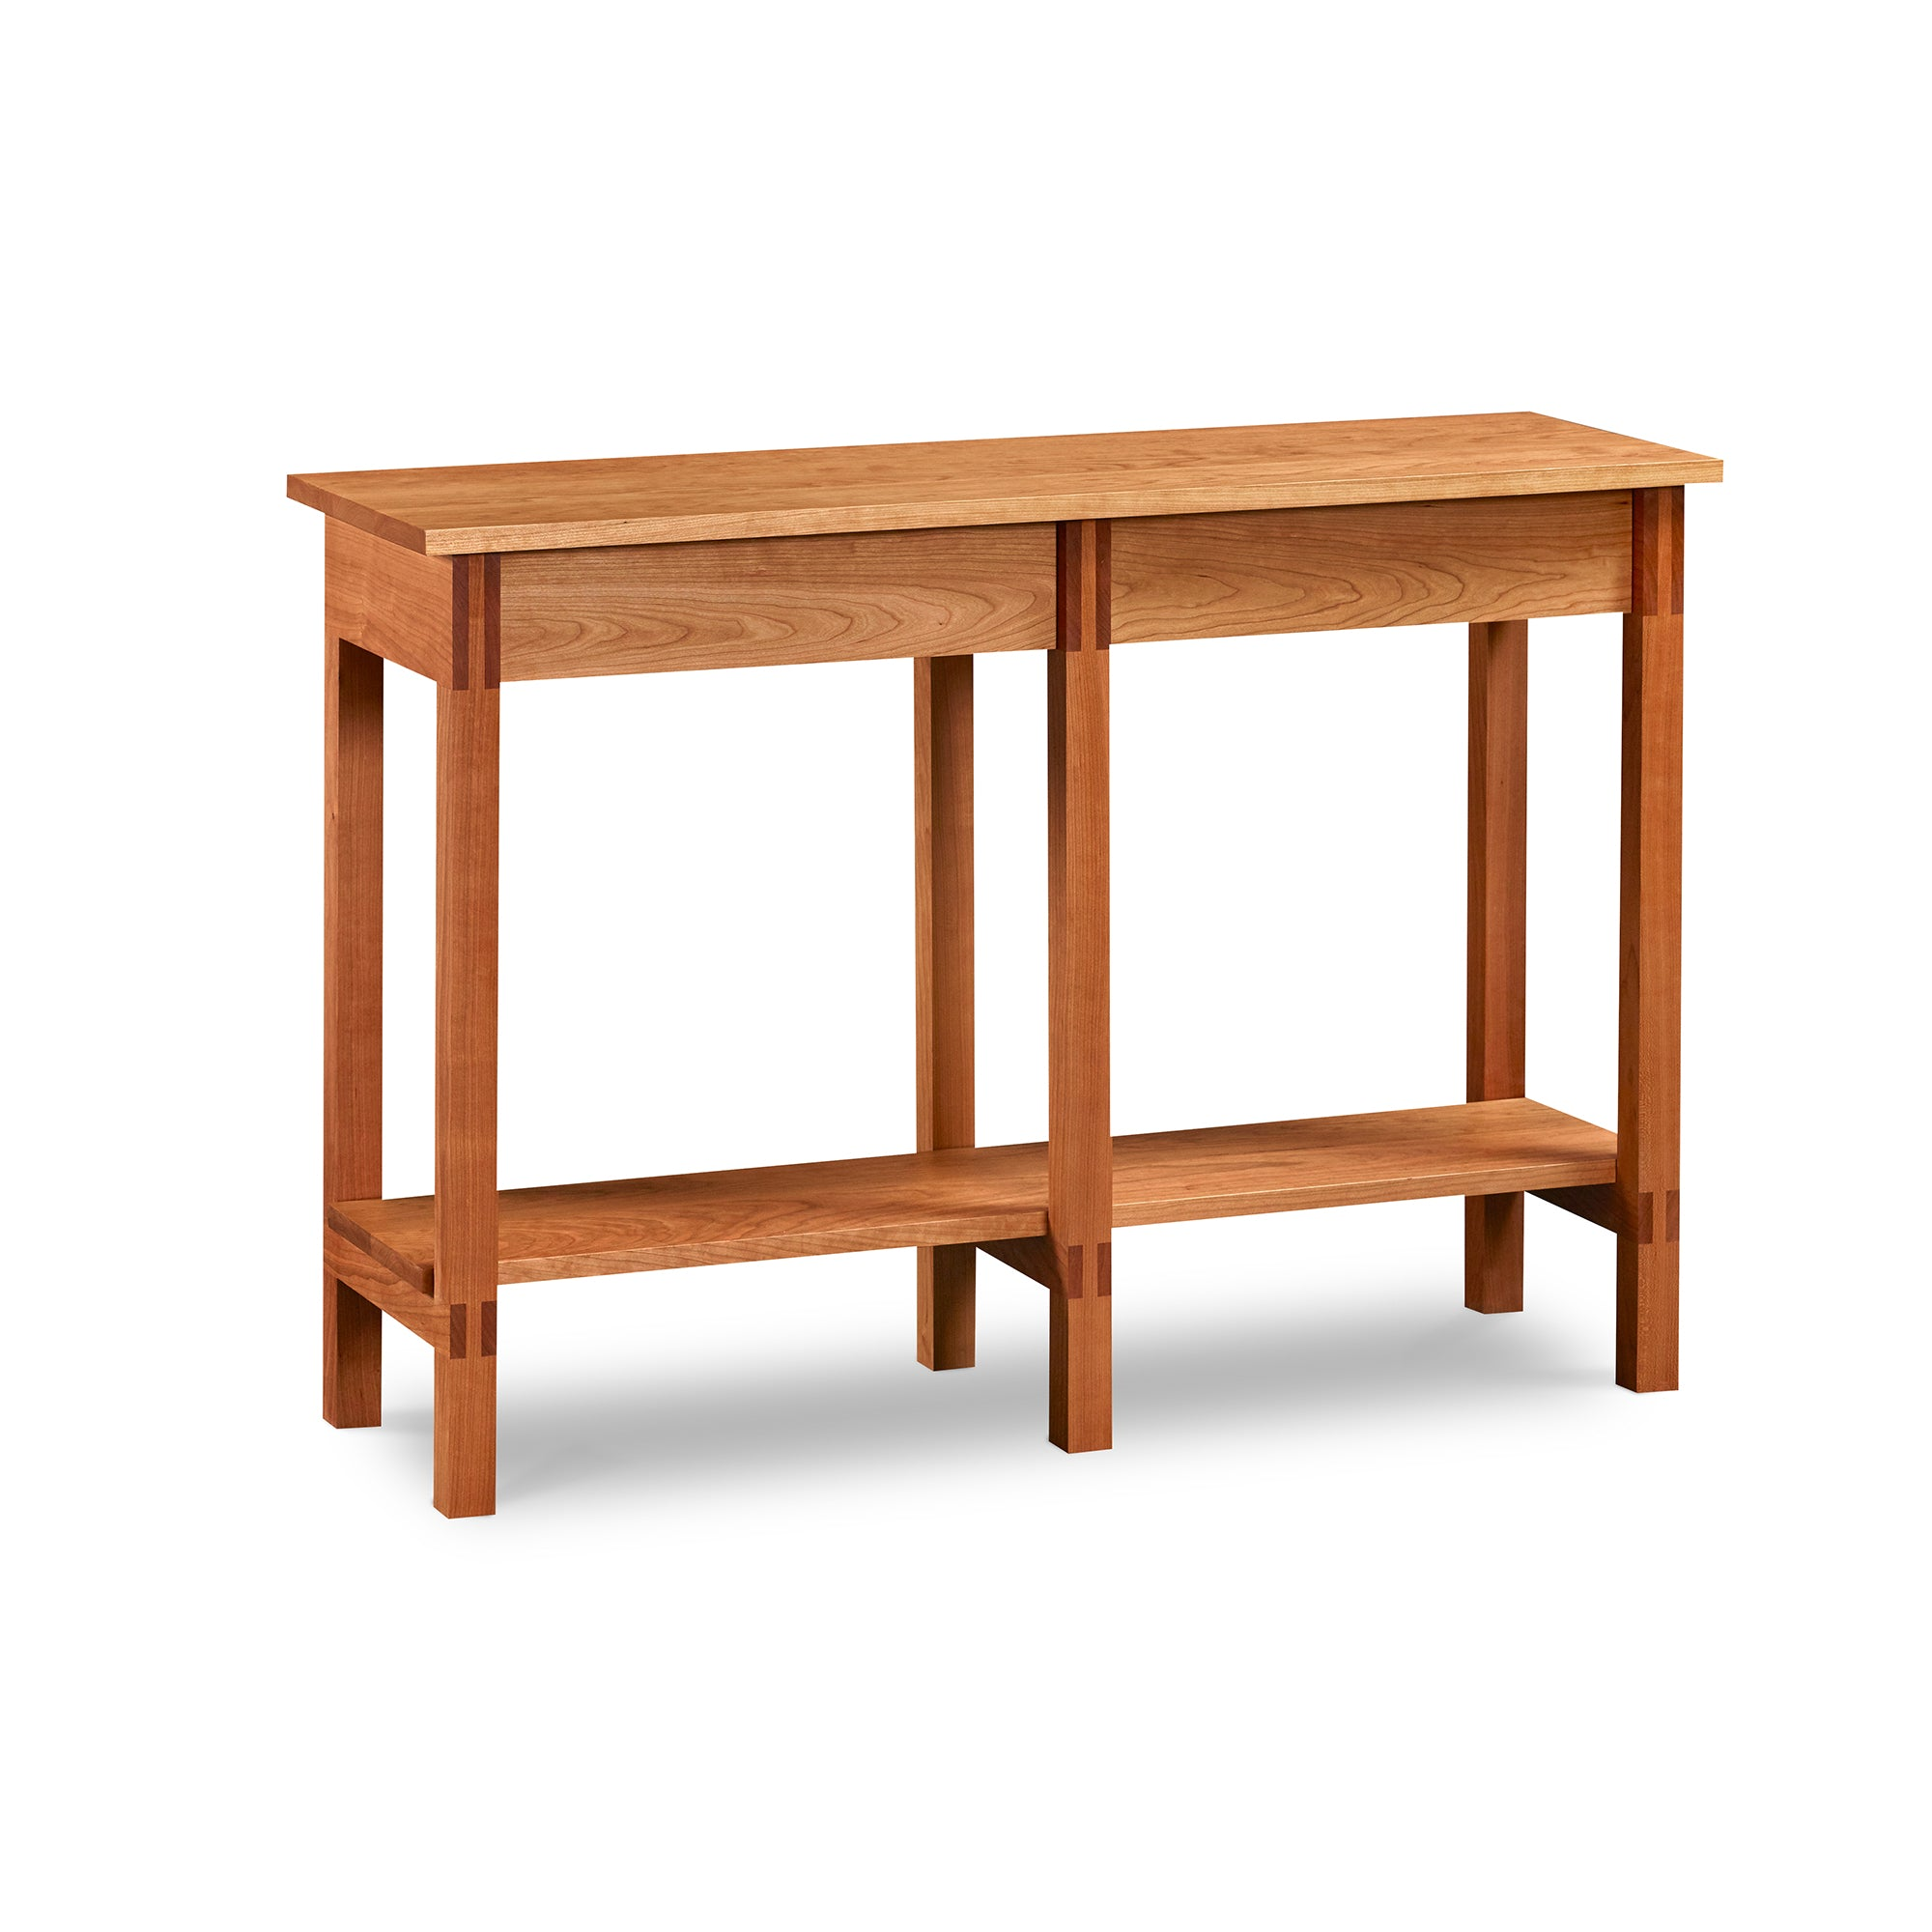 Modern sideboard with shelf and visible joinery in cherry, from Maine's Chilton Furniture Co.